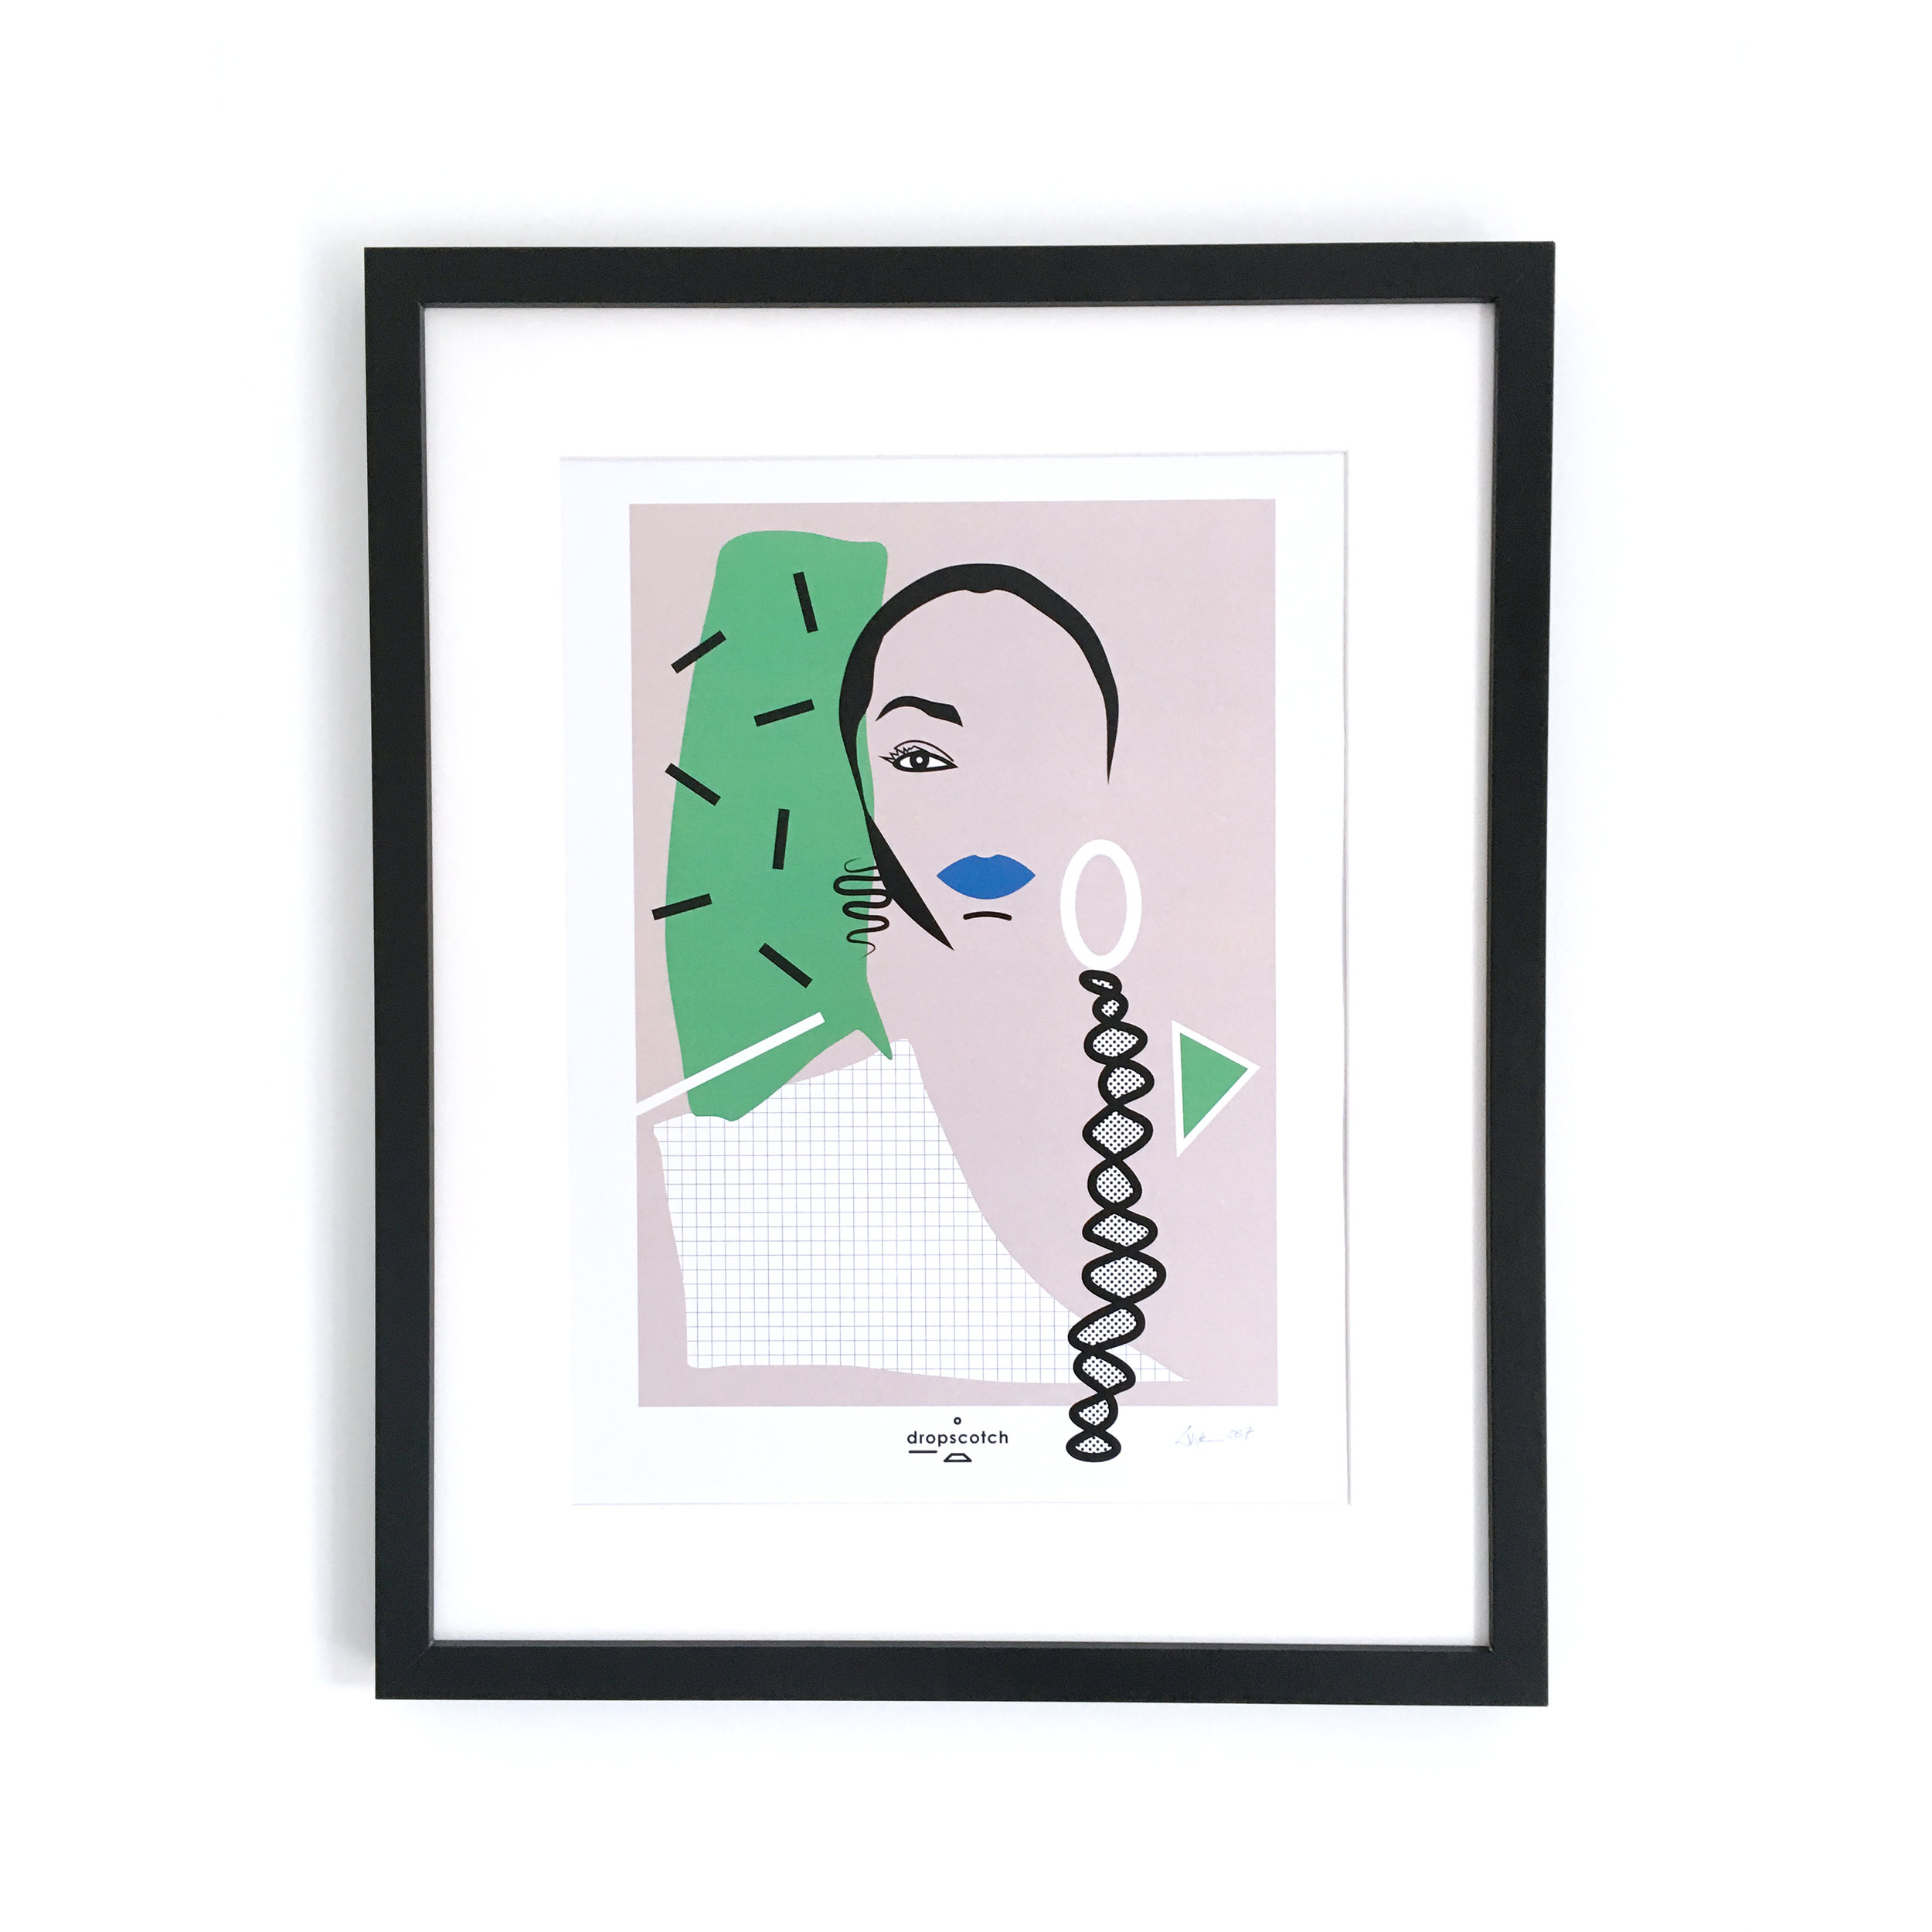 sade-print-illustration-dropscotch-framed.JPG